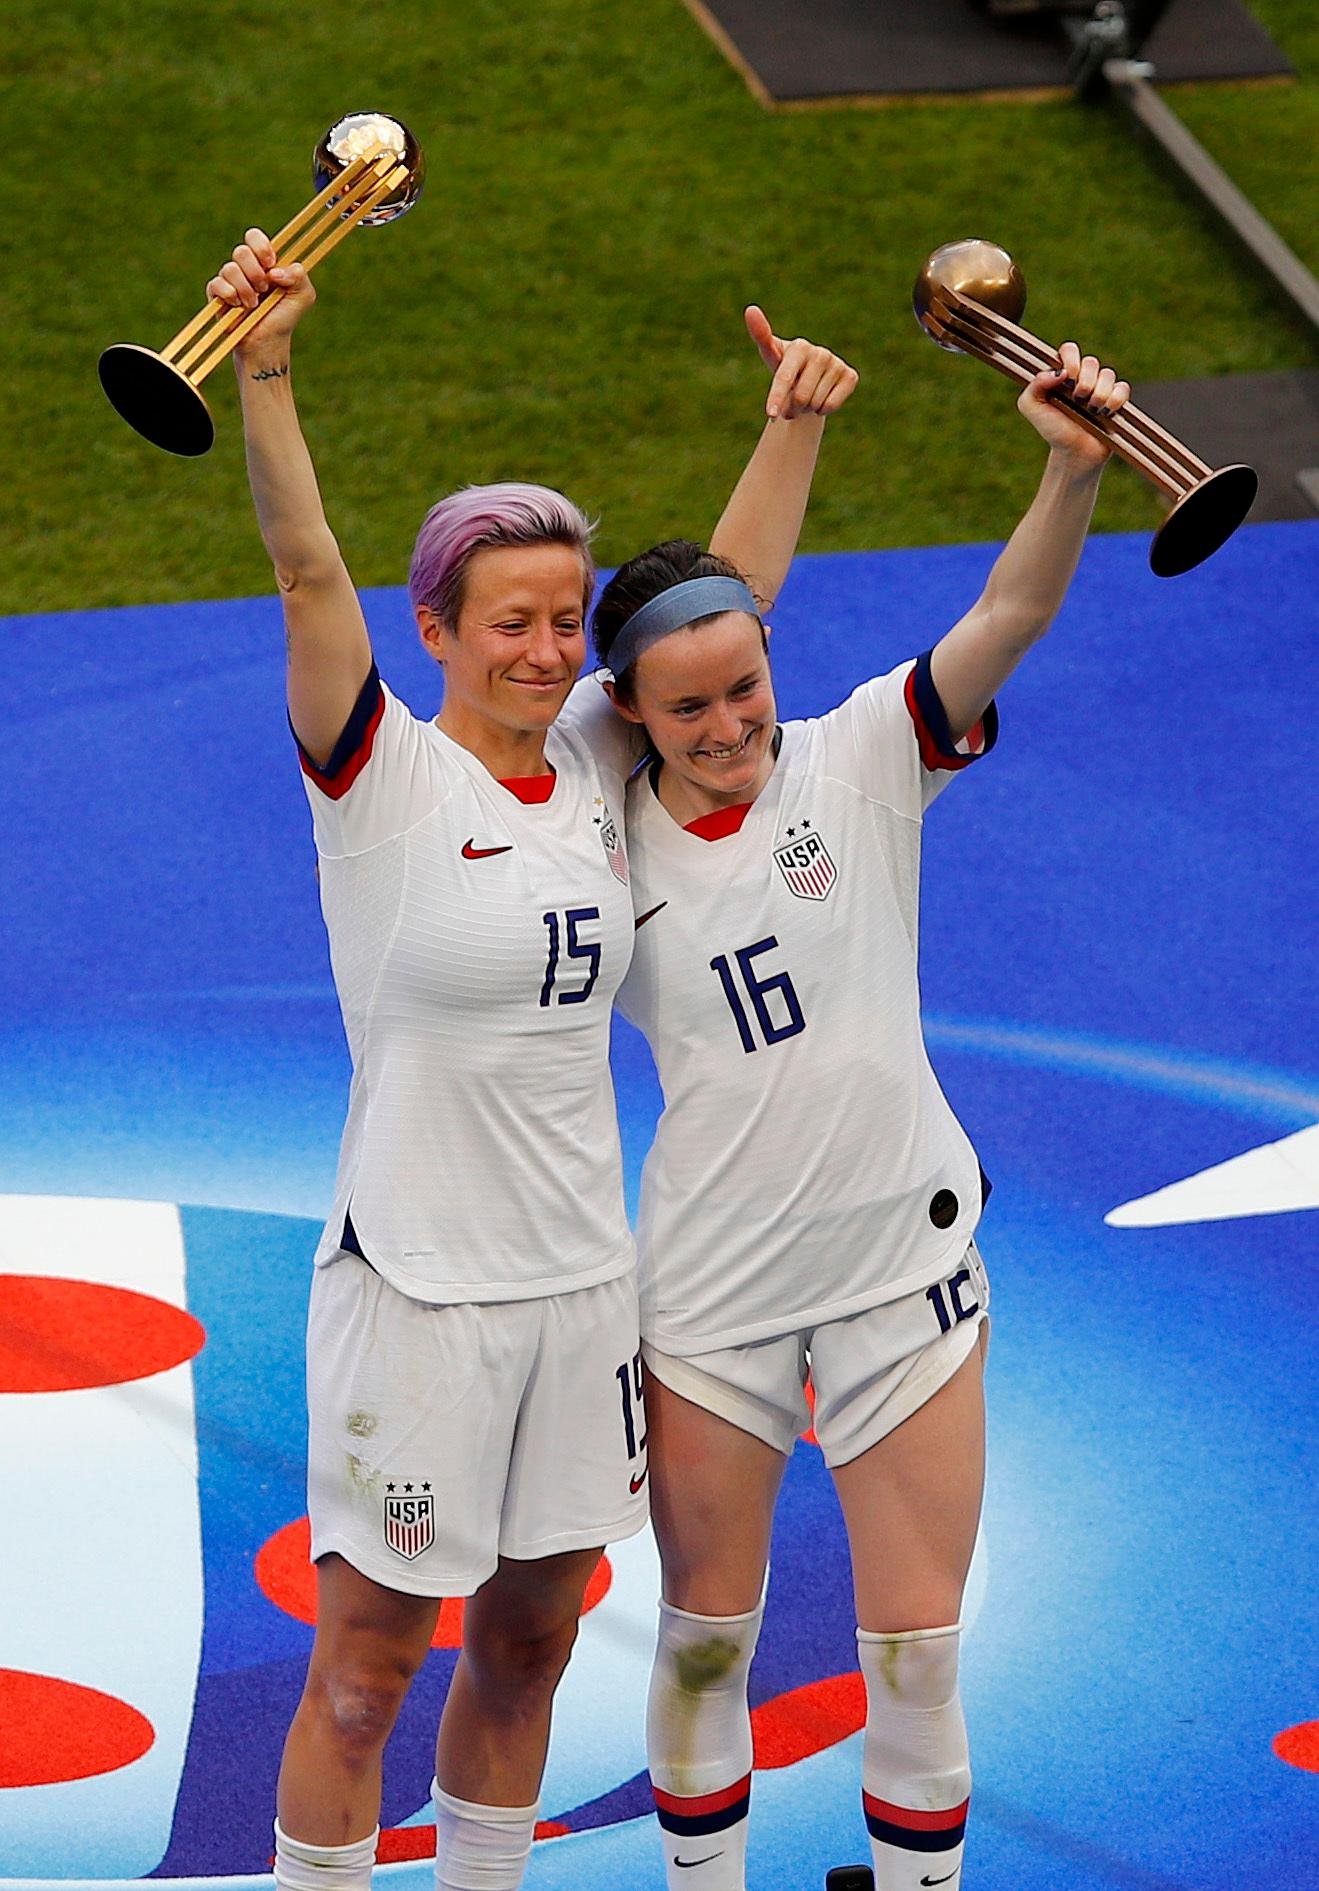 United States' Megan Rapinoe , left, and United States' Rose Lavelle celebrate after their team won the Women's World Cup final soccer match between US and The Netherlands at the Stade de Lyon in Decines, outside Lyon, France, Sunday, July 7, 2019. (AP Photo/Francois Mori)